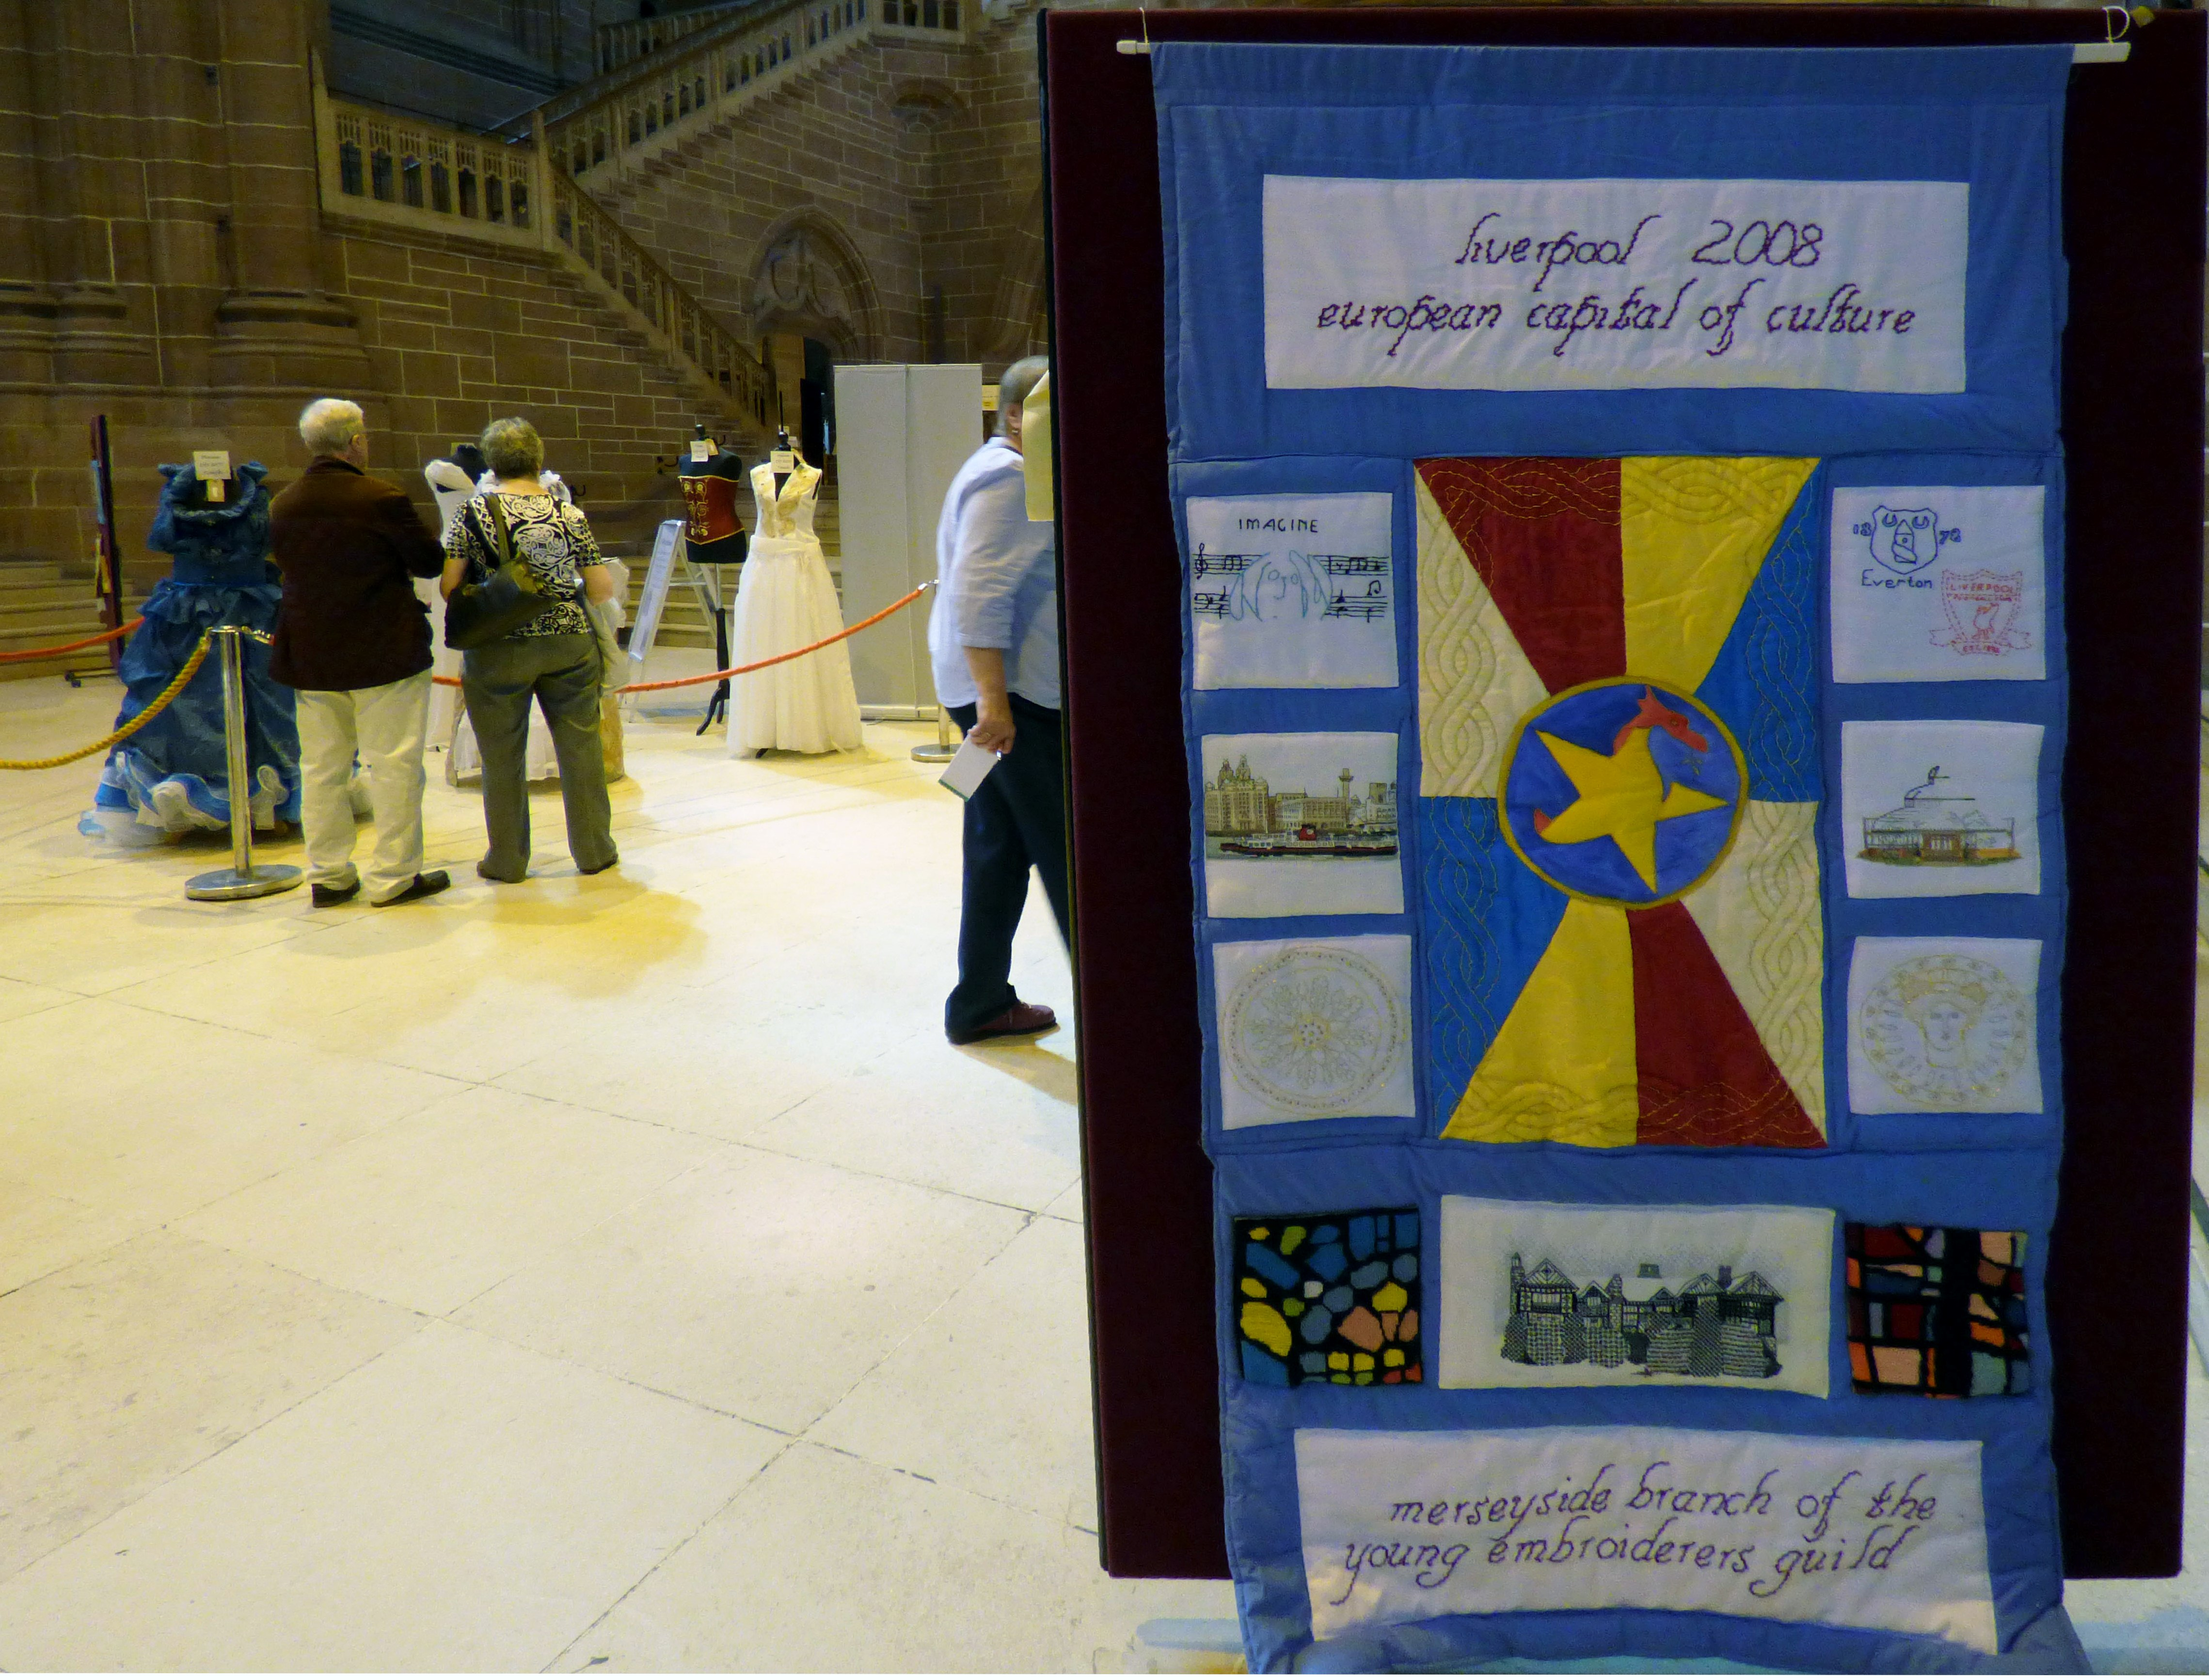 Merseyside Young Embroiderers 2008 banner at 60 Glorious Years exhibition, Liverpool Anglican Cathedral 2016